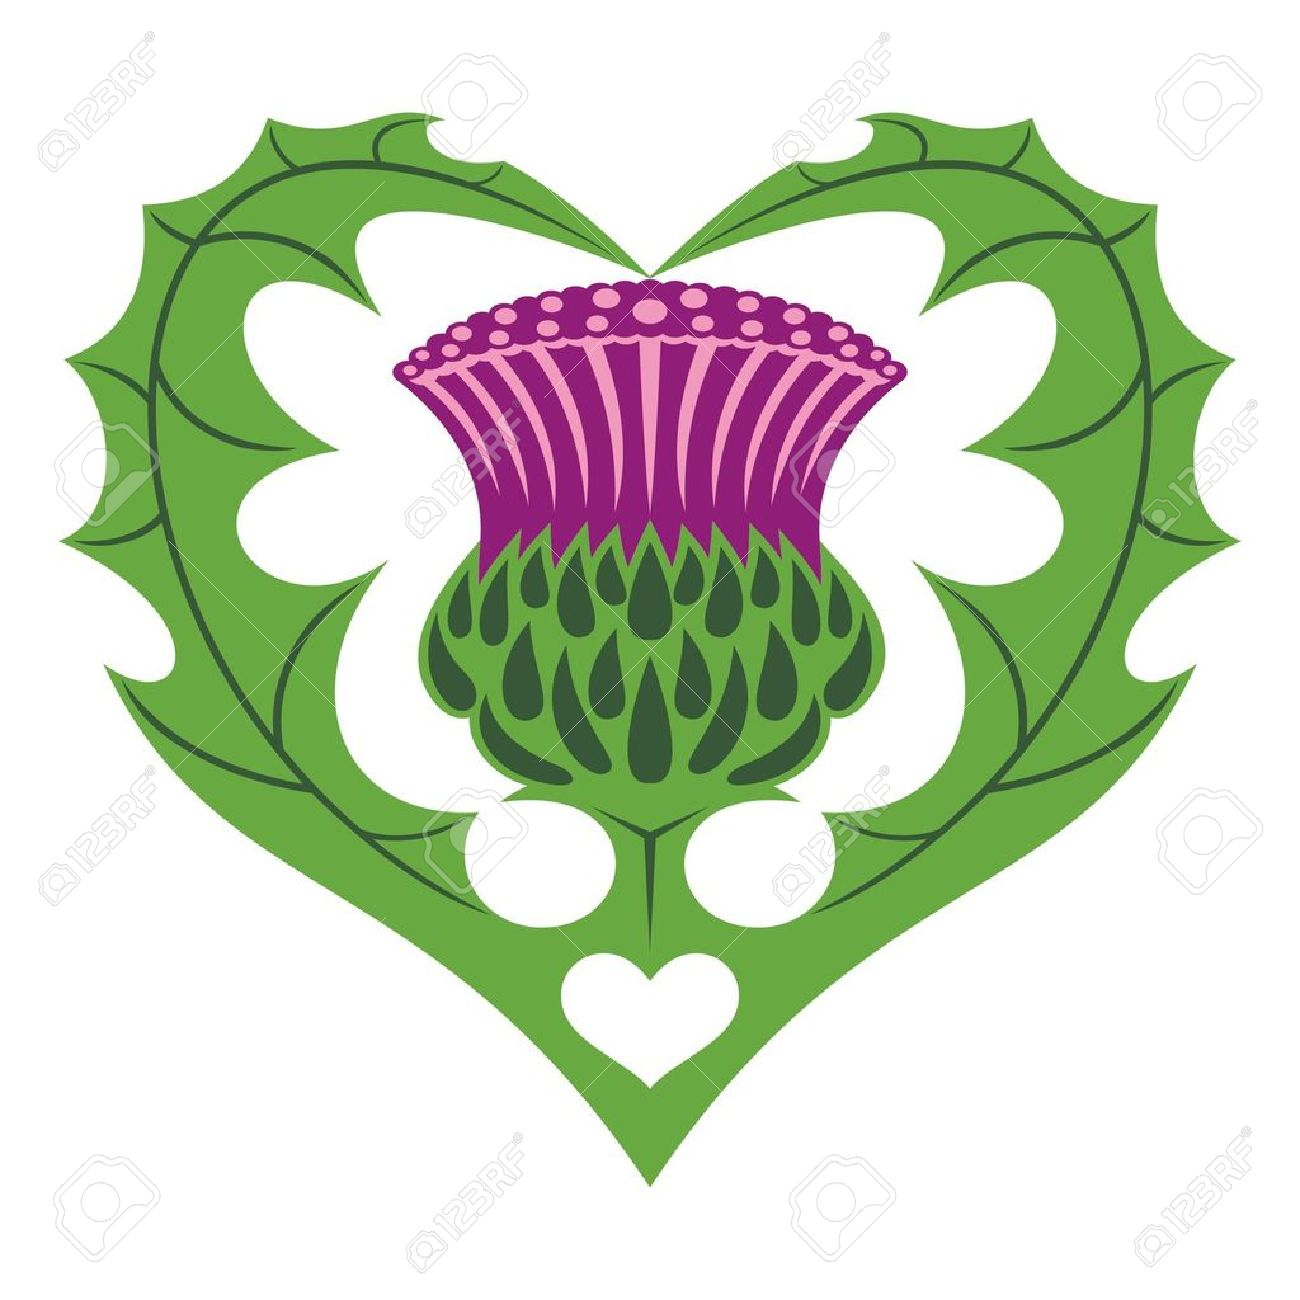 Thistle clipart #3, Download drawings